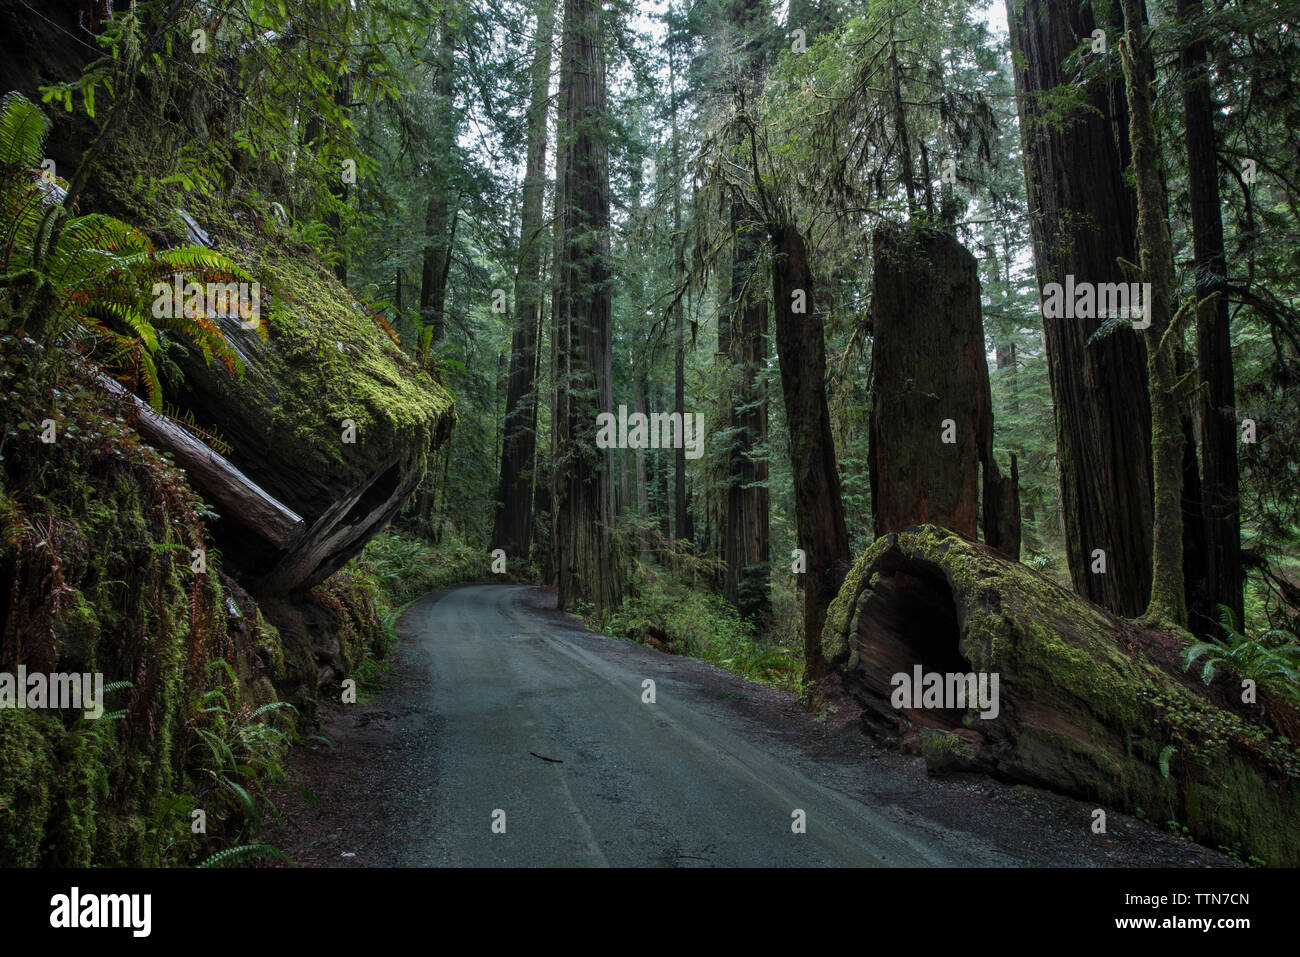 Road amidst trees at Jedediah Smith Redwoods State Park - Stock Image